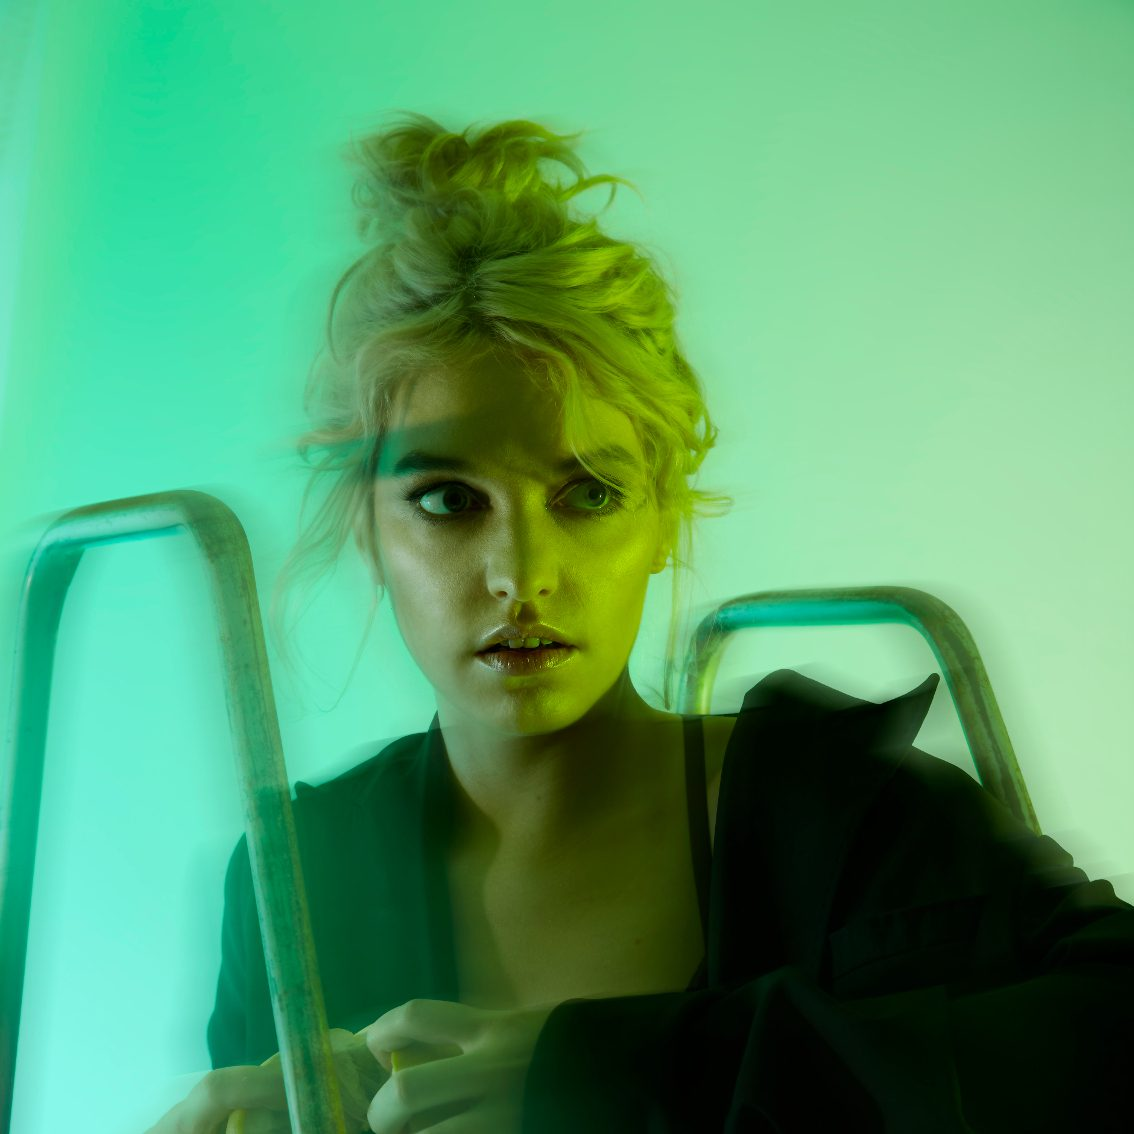 Danish electro pop artist Lydmor returns with 'Someone We Used To Love' - watch the video